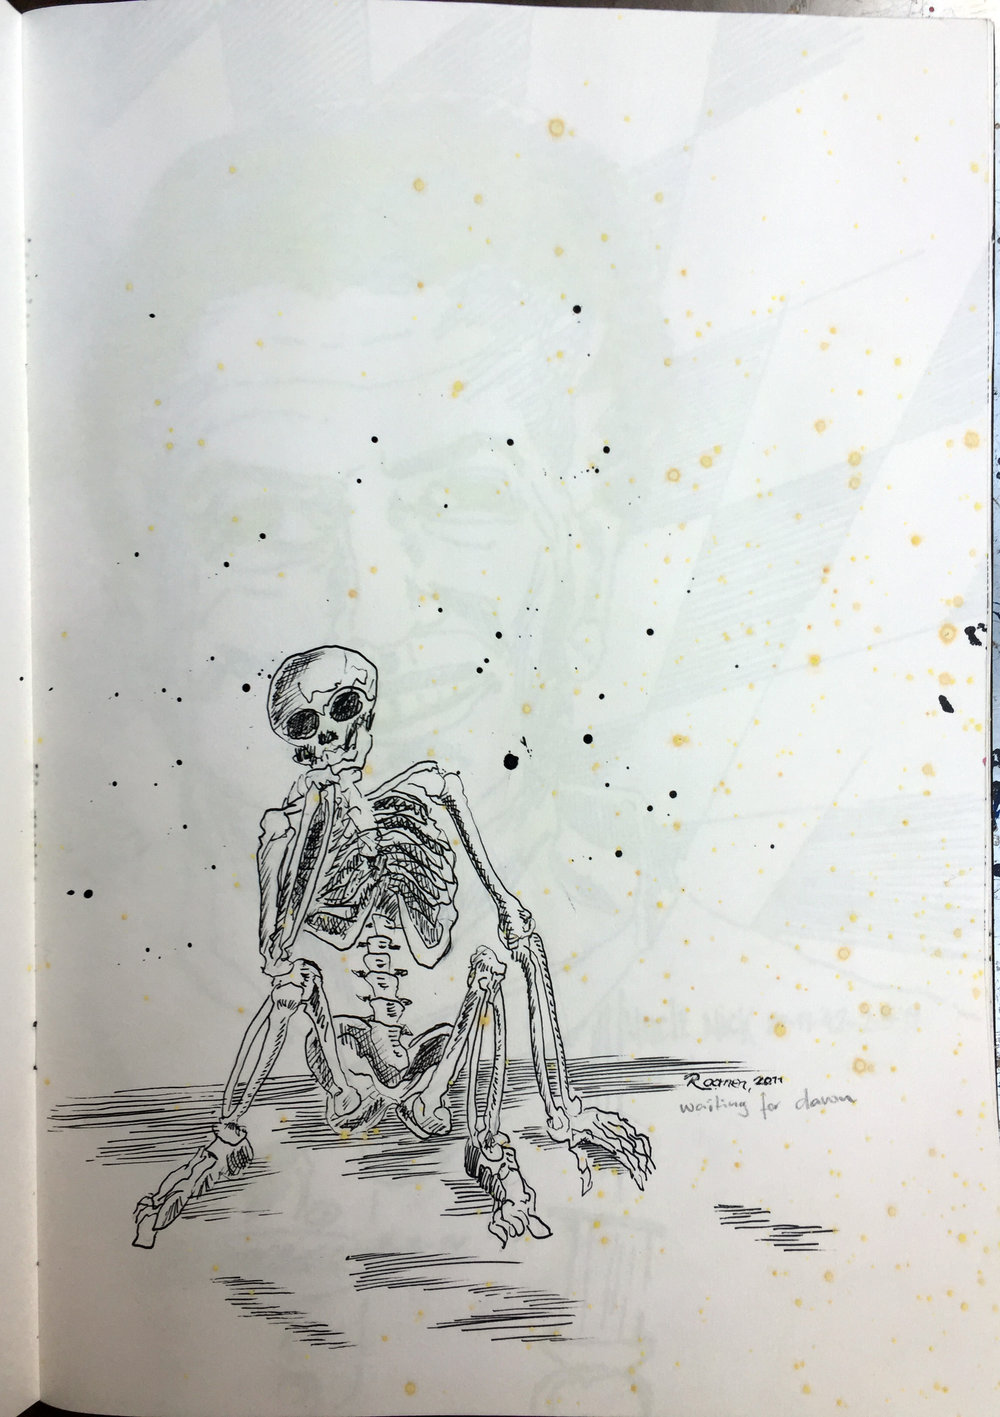 skeleton wondering ink on paper 42x29,7 cm 2011